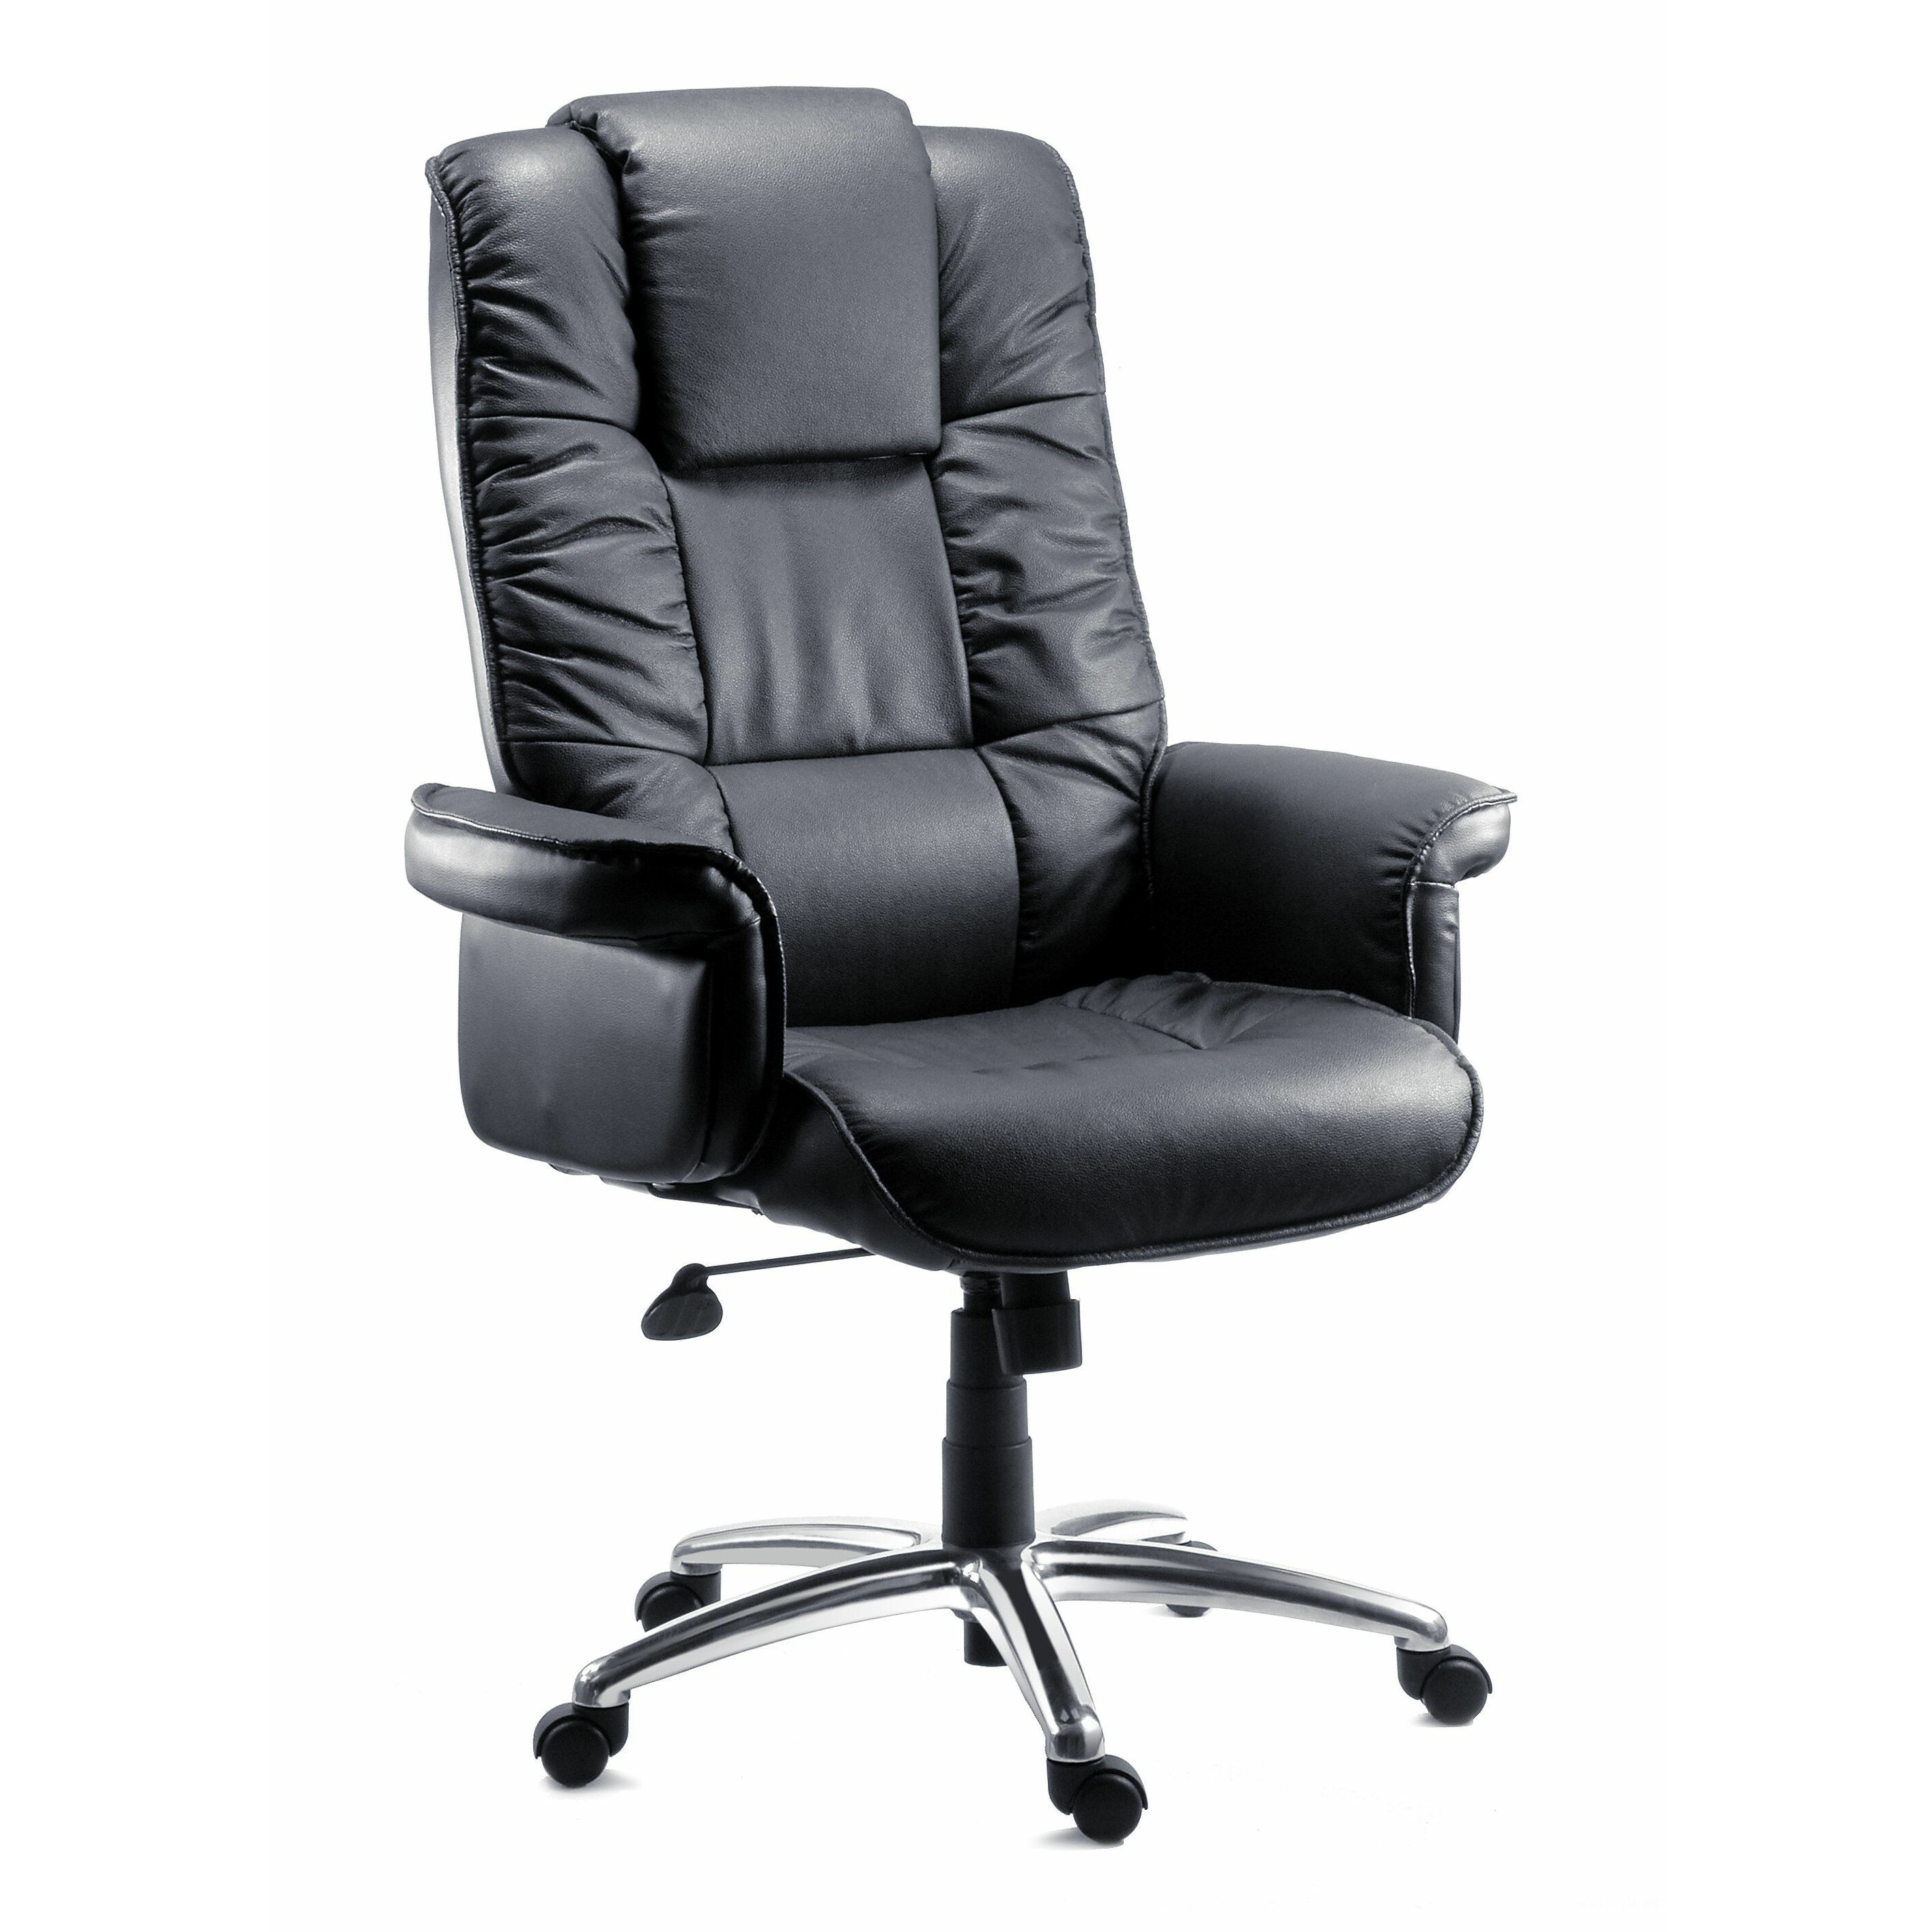 Home Haus High Back Executive Chair With Lumbar Support Reviews